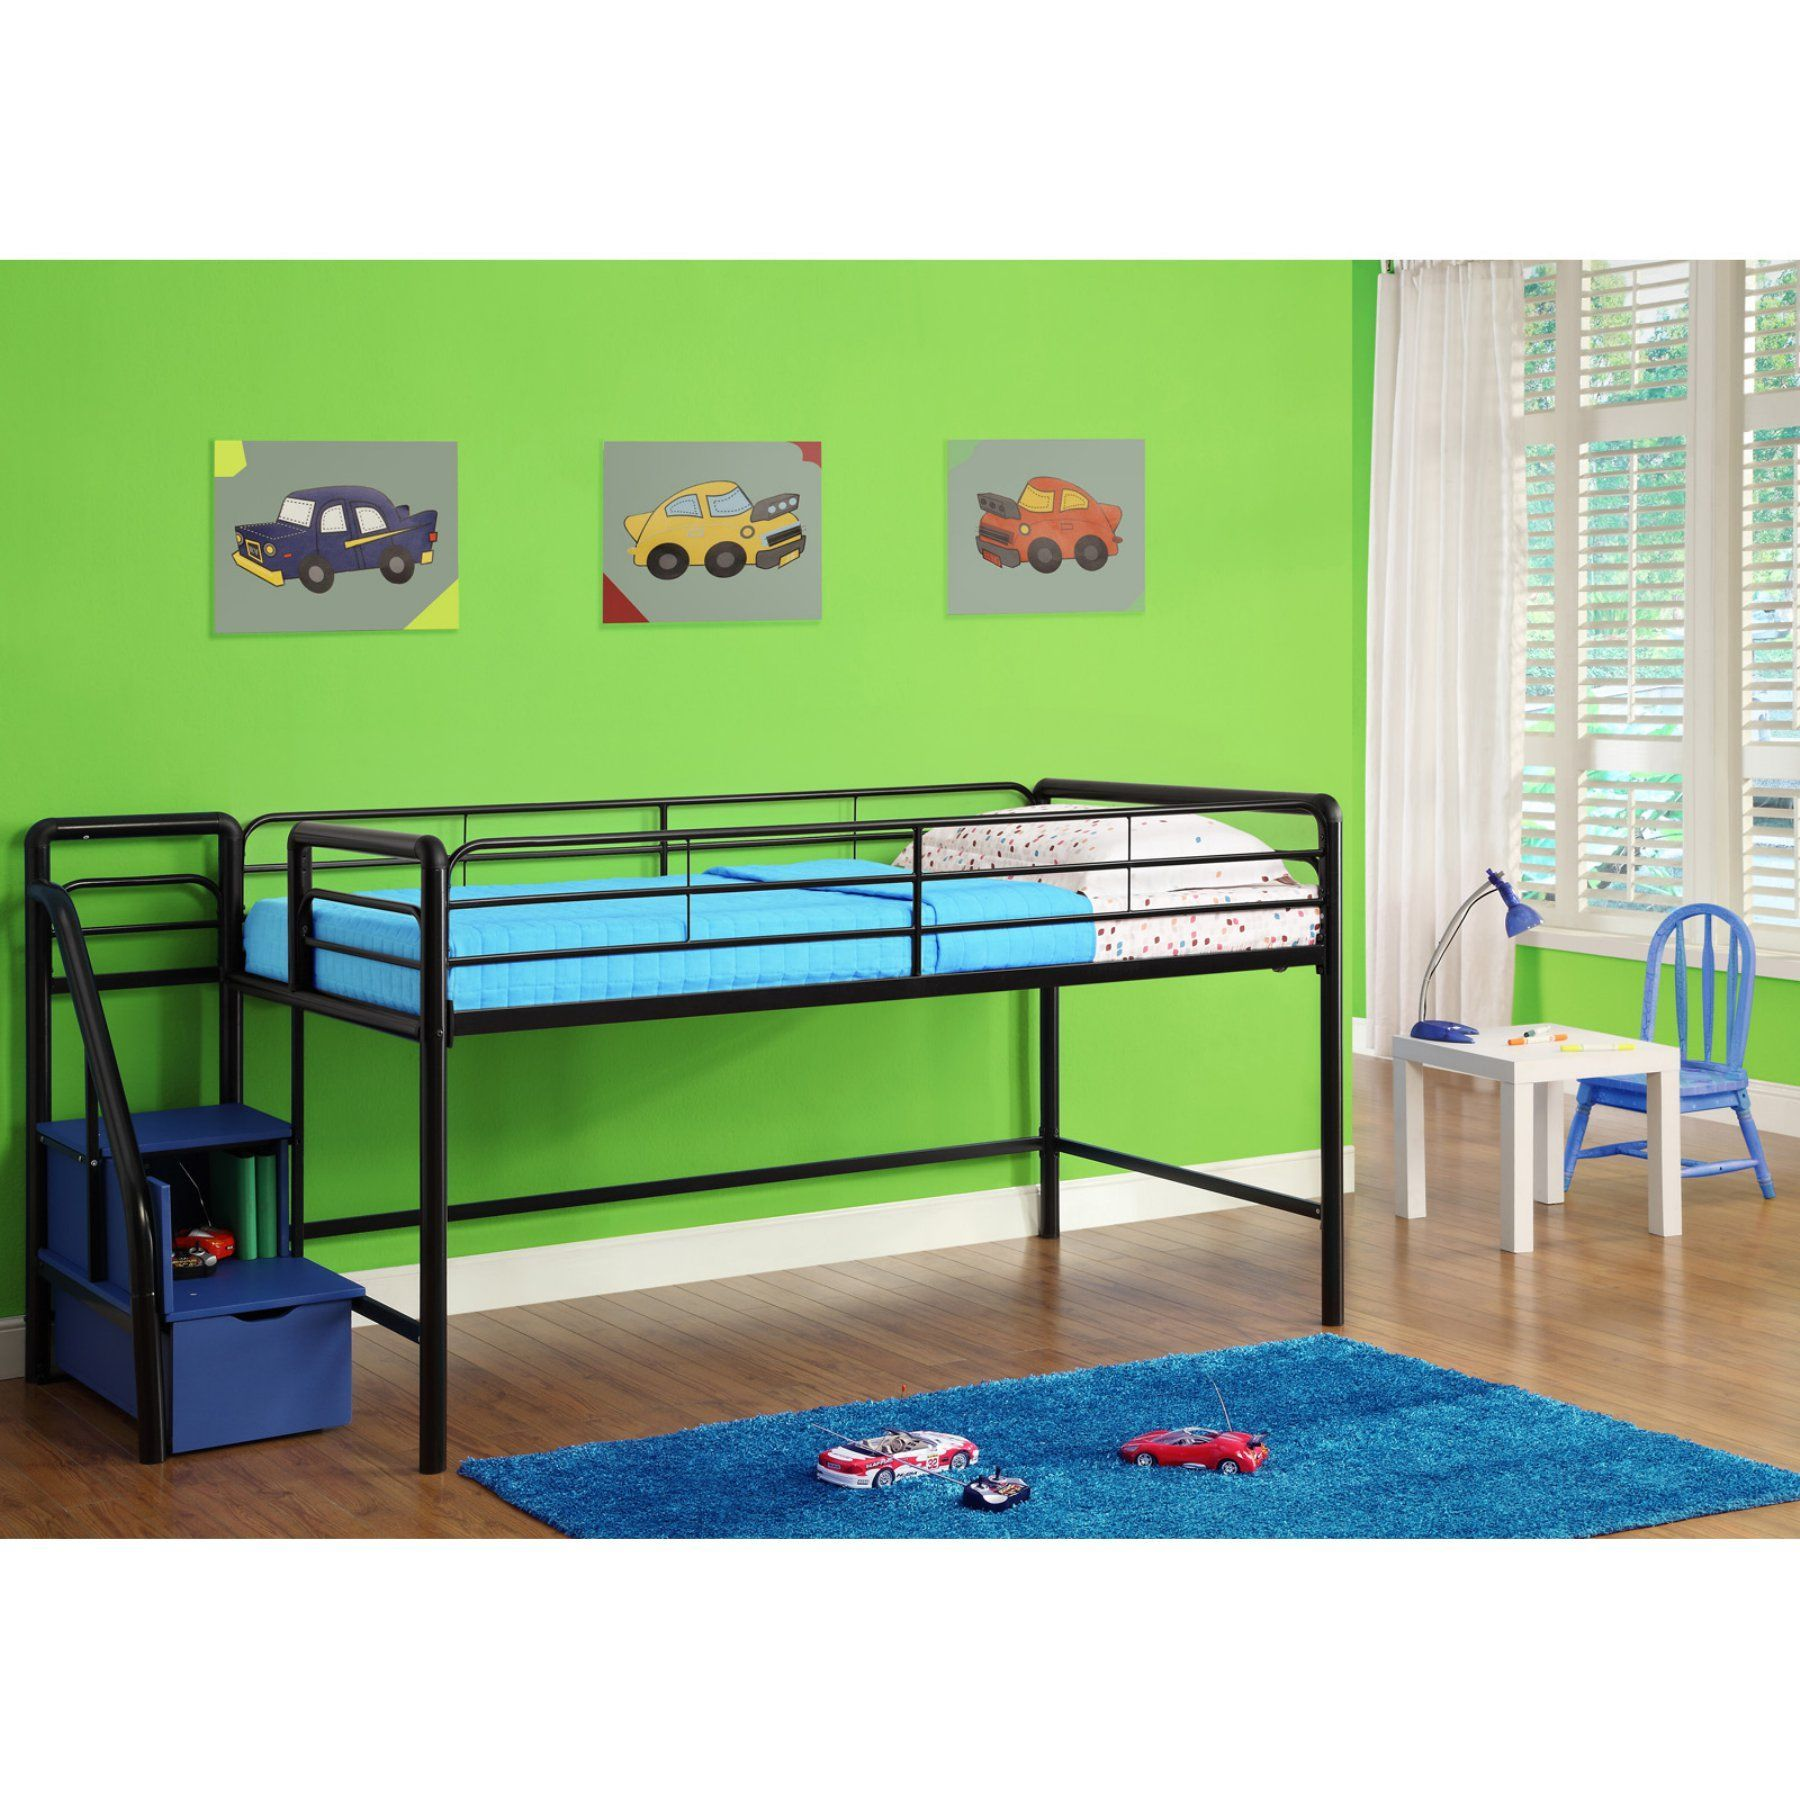 Junior loft bed ideas  DHP Junior Loft with Steps and Storage  Blue    Lofts and